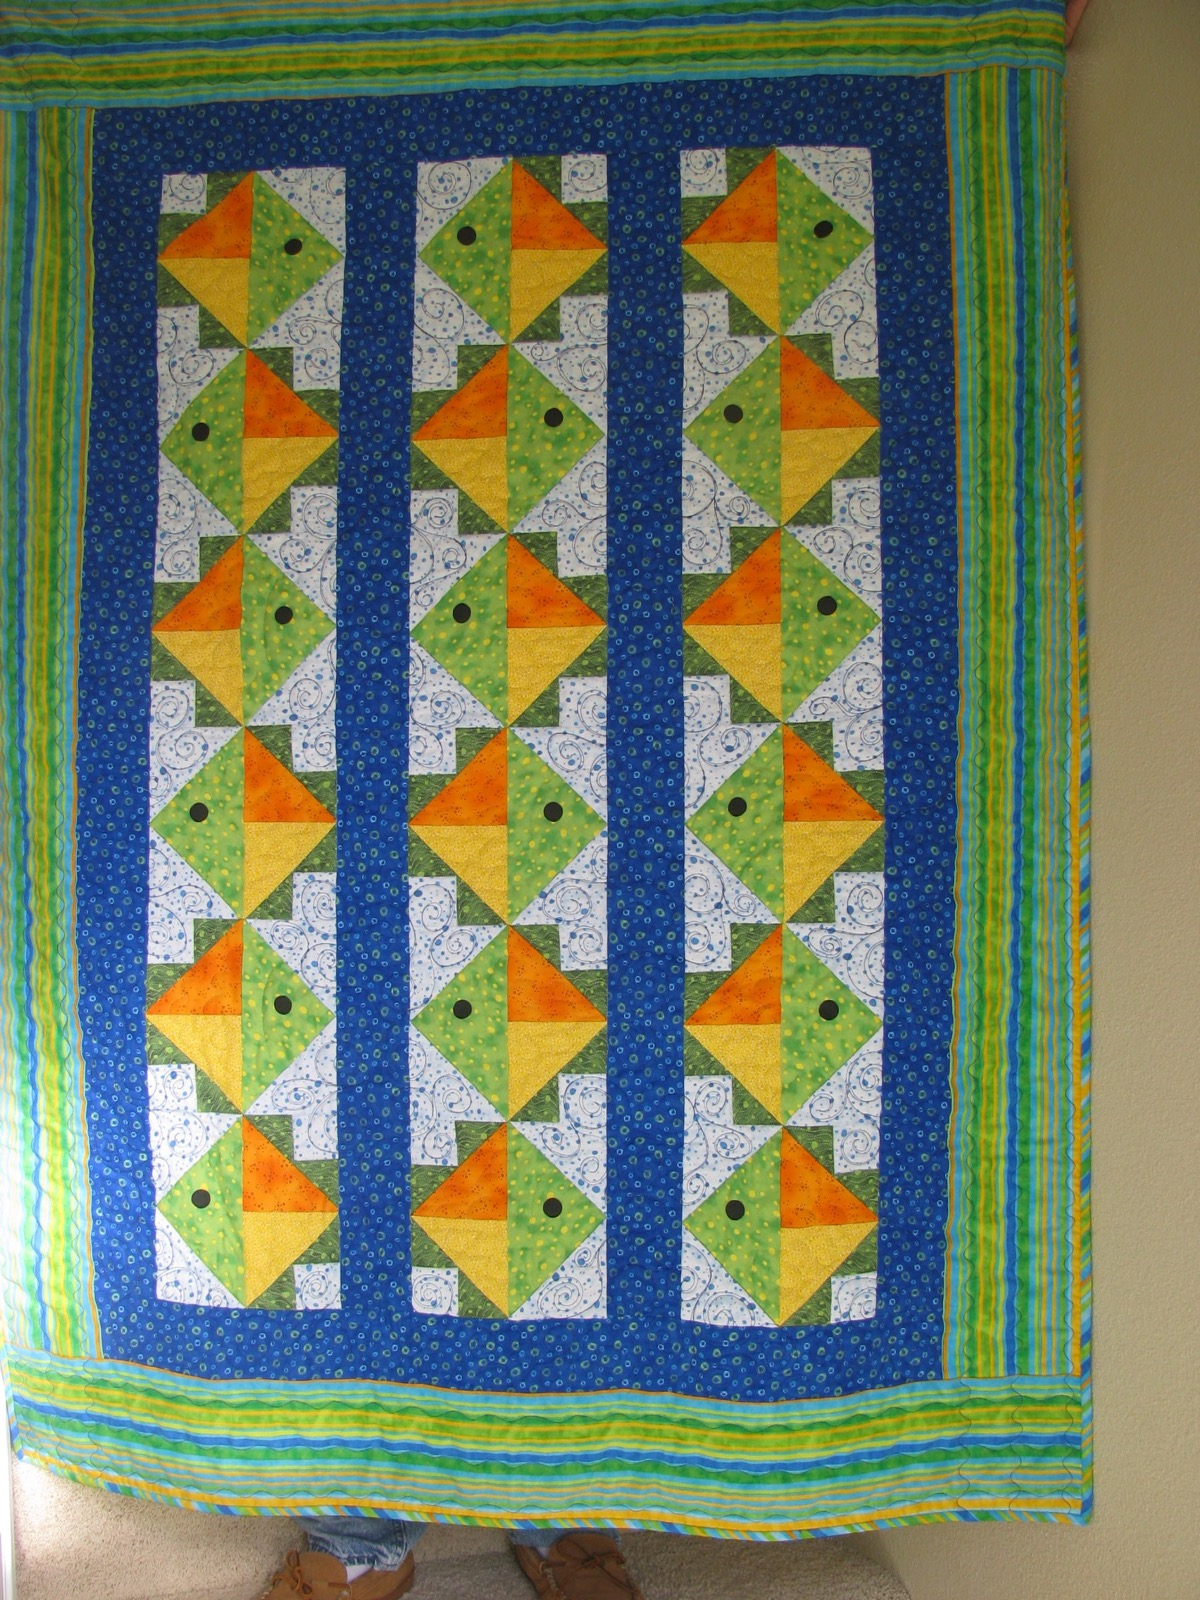 little my was made quilt home s while dsc enough a melbourne sew one too lol make blocks group for were gift the offered finished i to time by fish quilts long many get